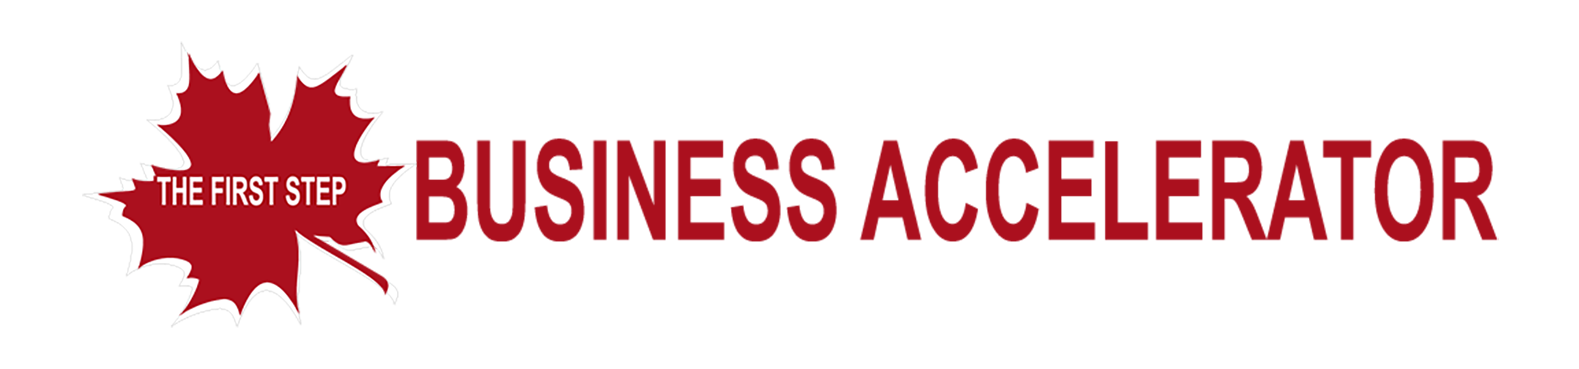 THE FIRST STEP – BUSINESS ACCELERATOR PROGRAM